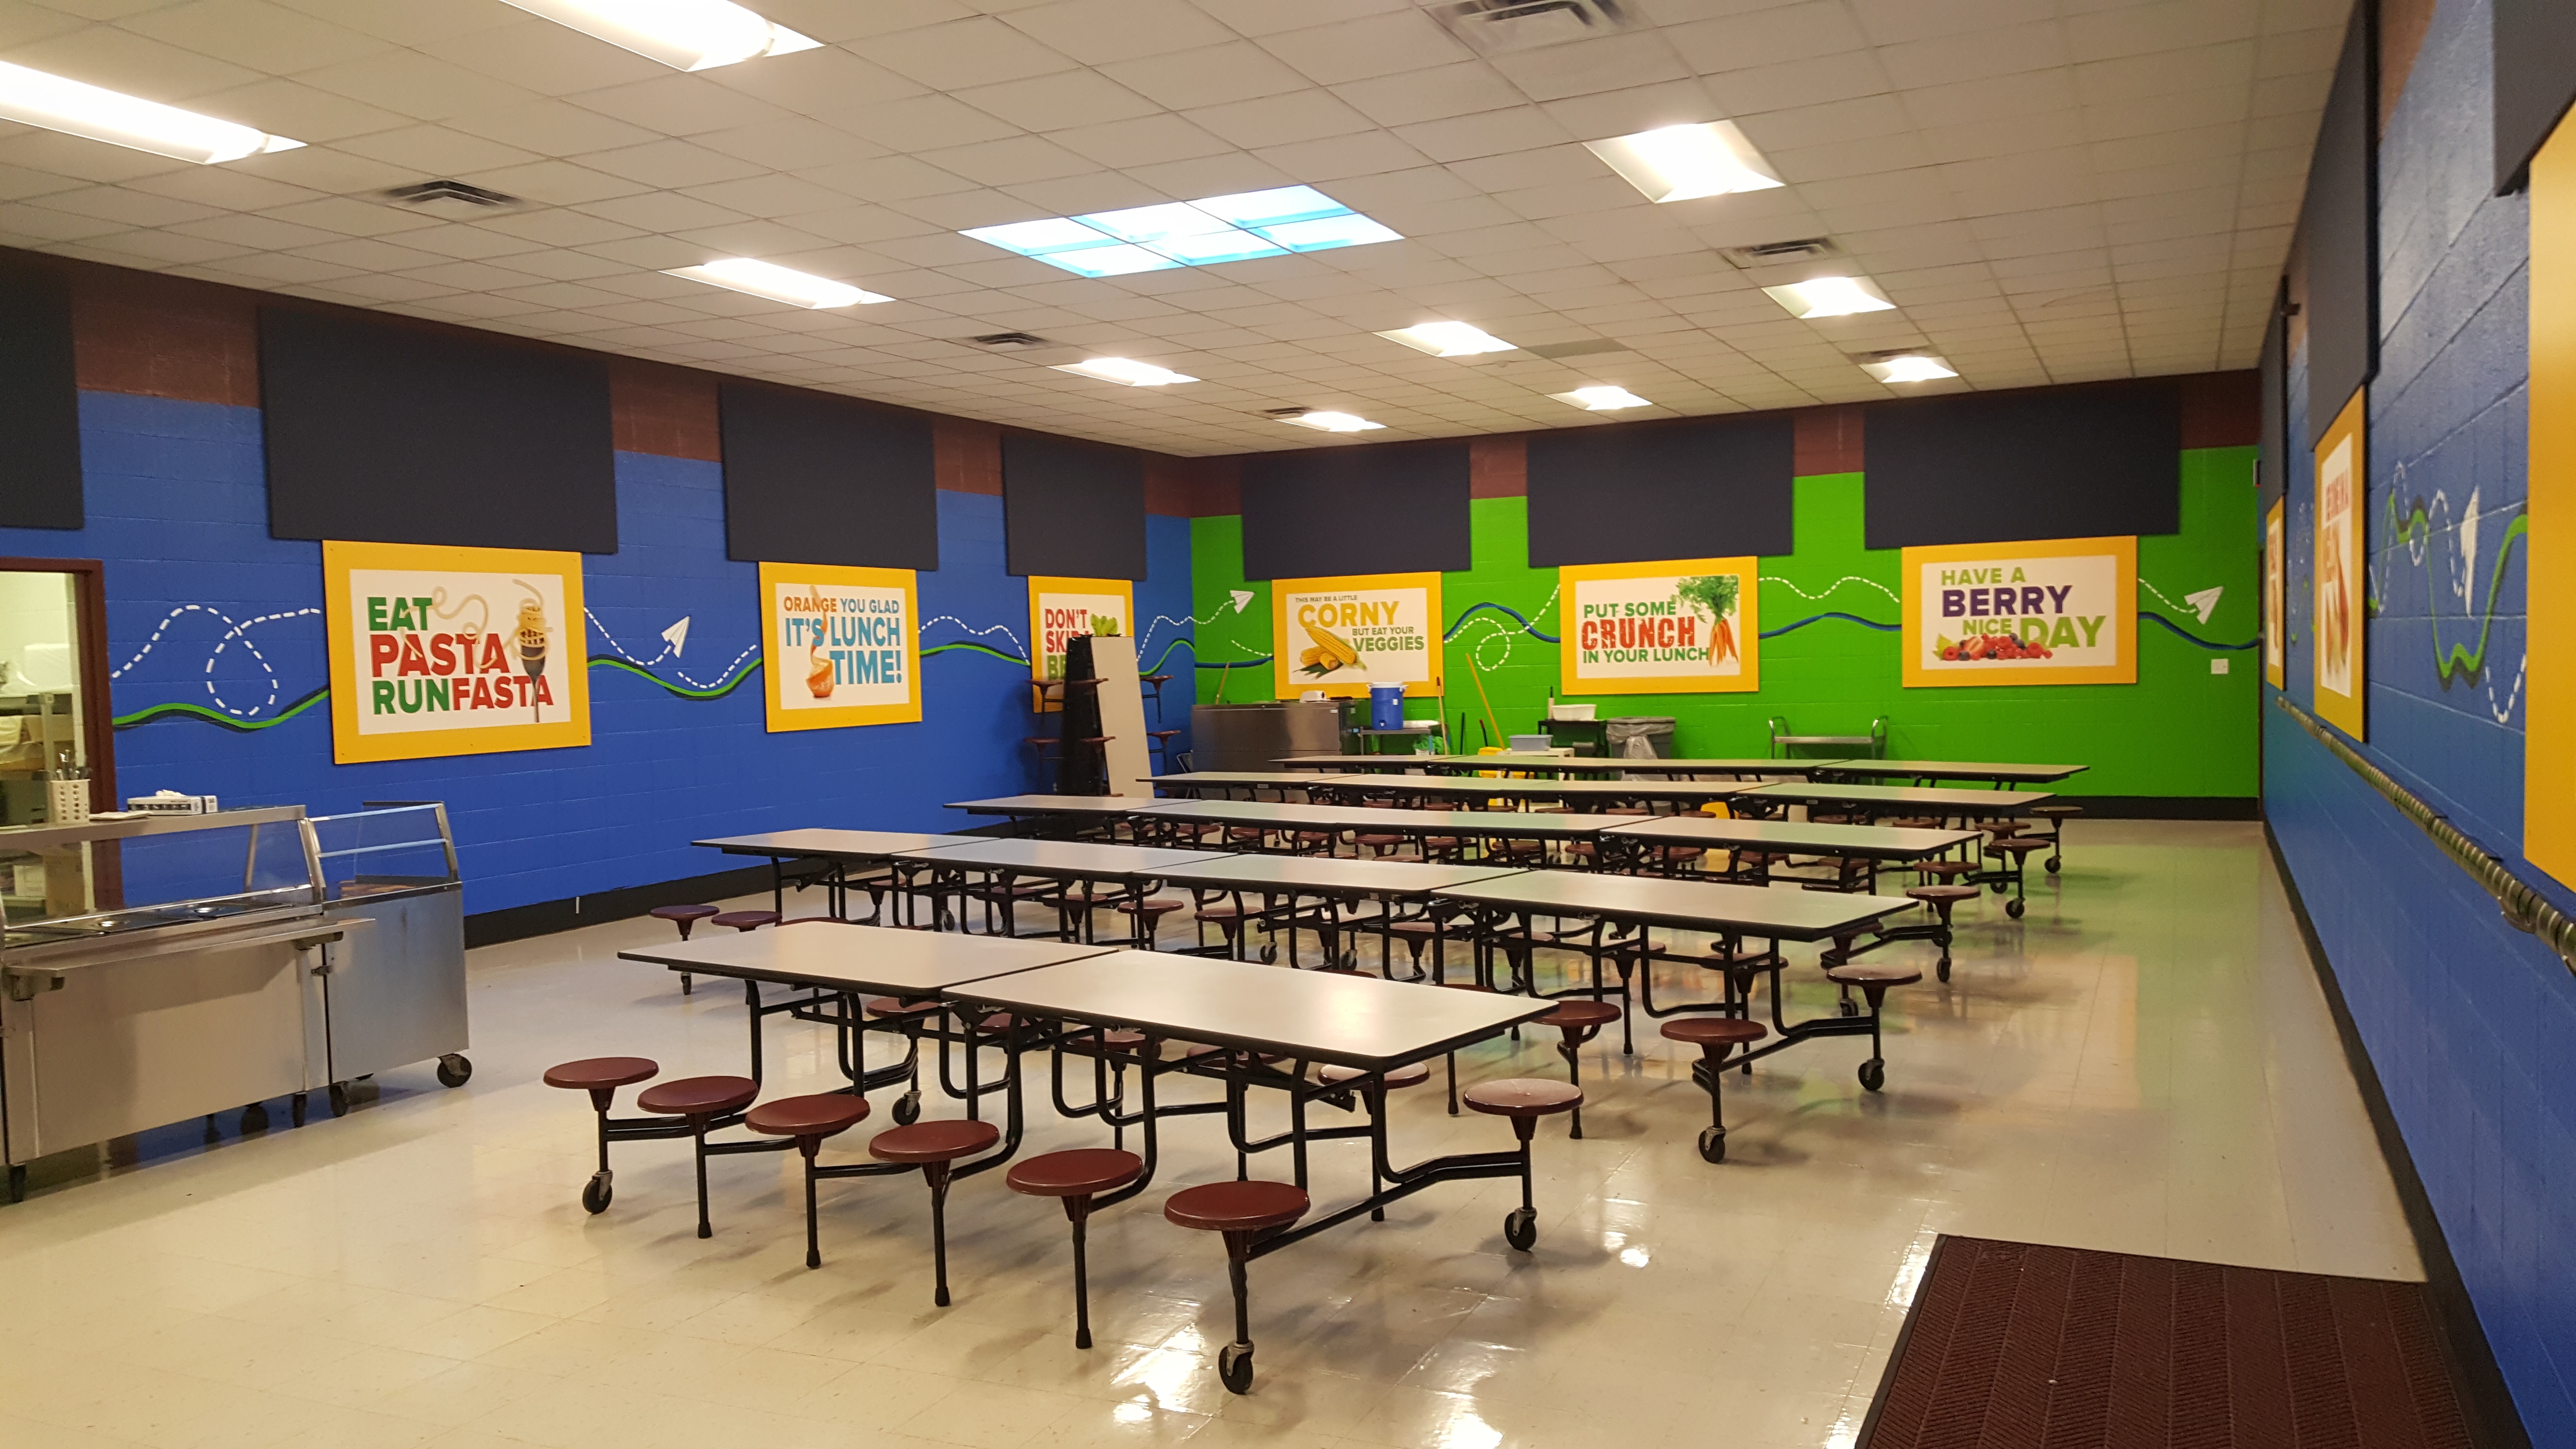 Cafeteria Soundproofing Noise Control in Cafeterias 5312x2988